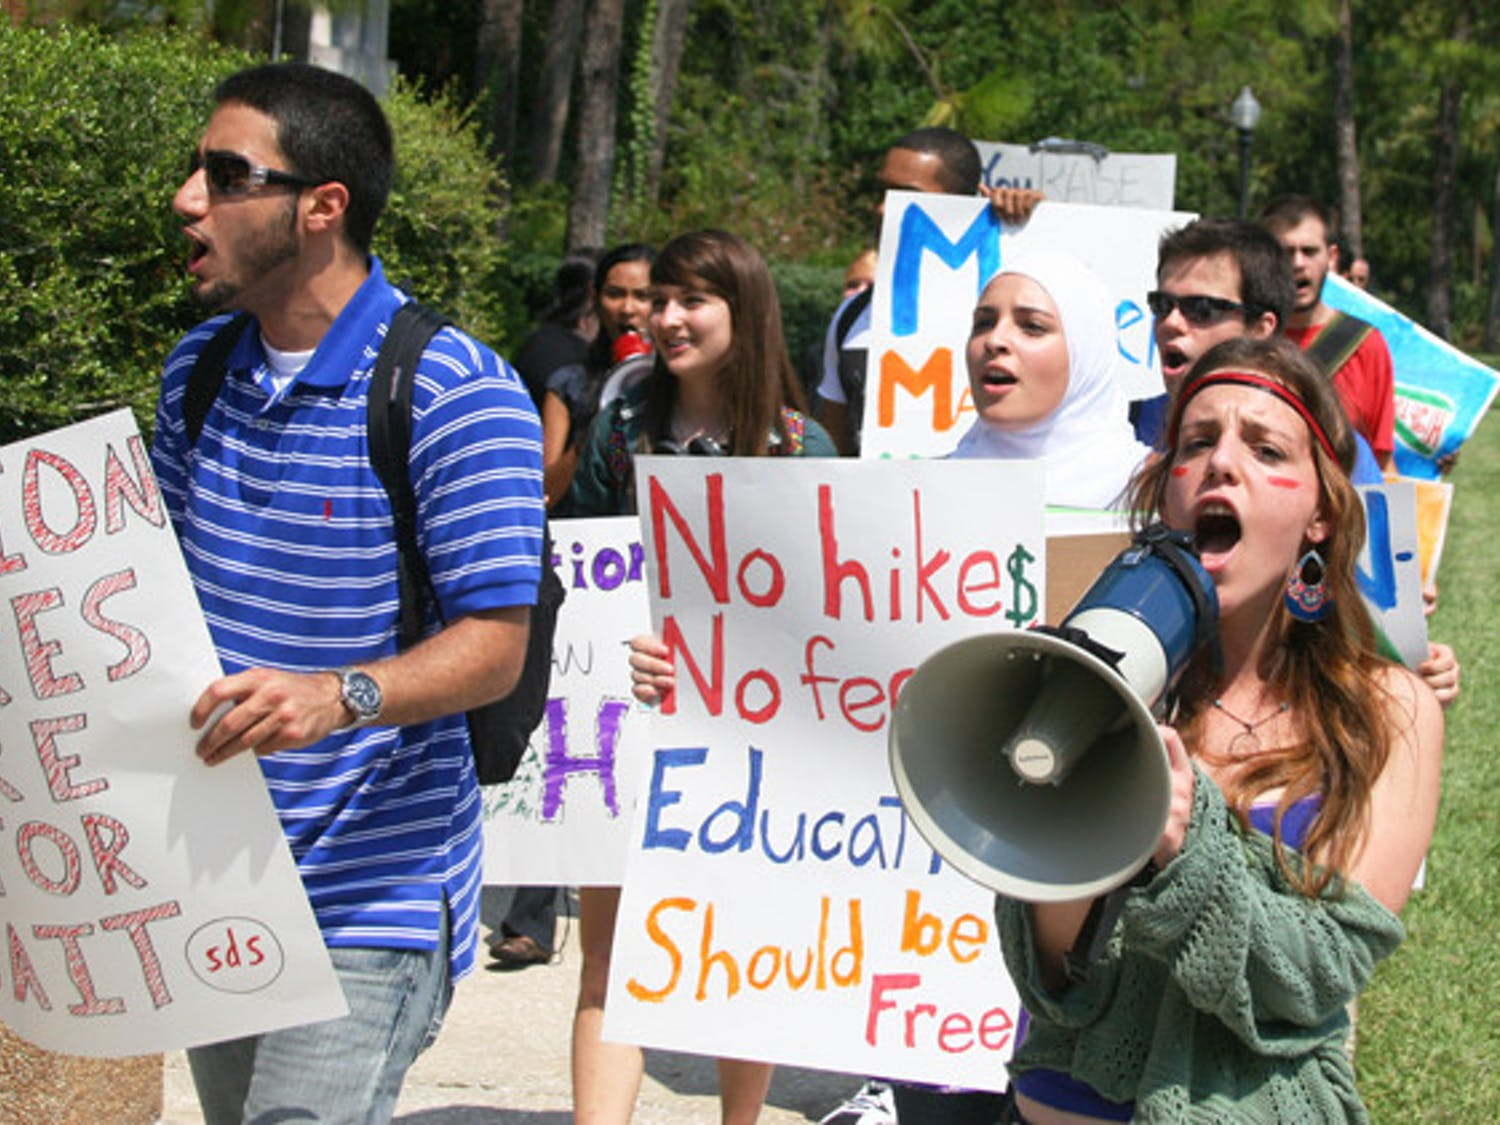 Members of Students for a Democratic Society protest tuition hikes around UF's campus Friday afternoon.